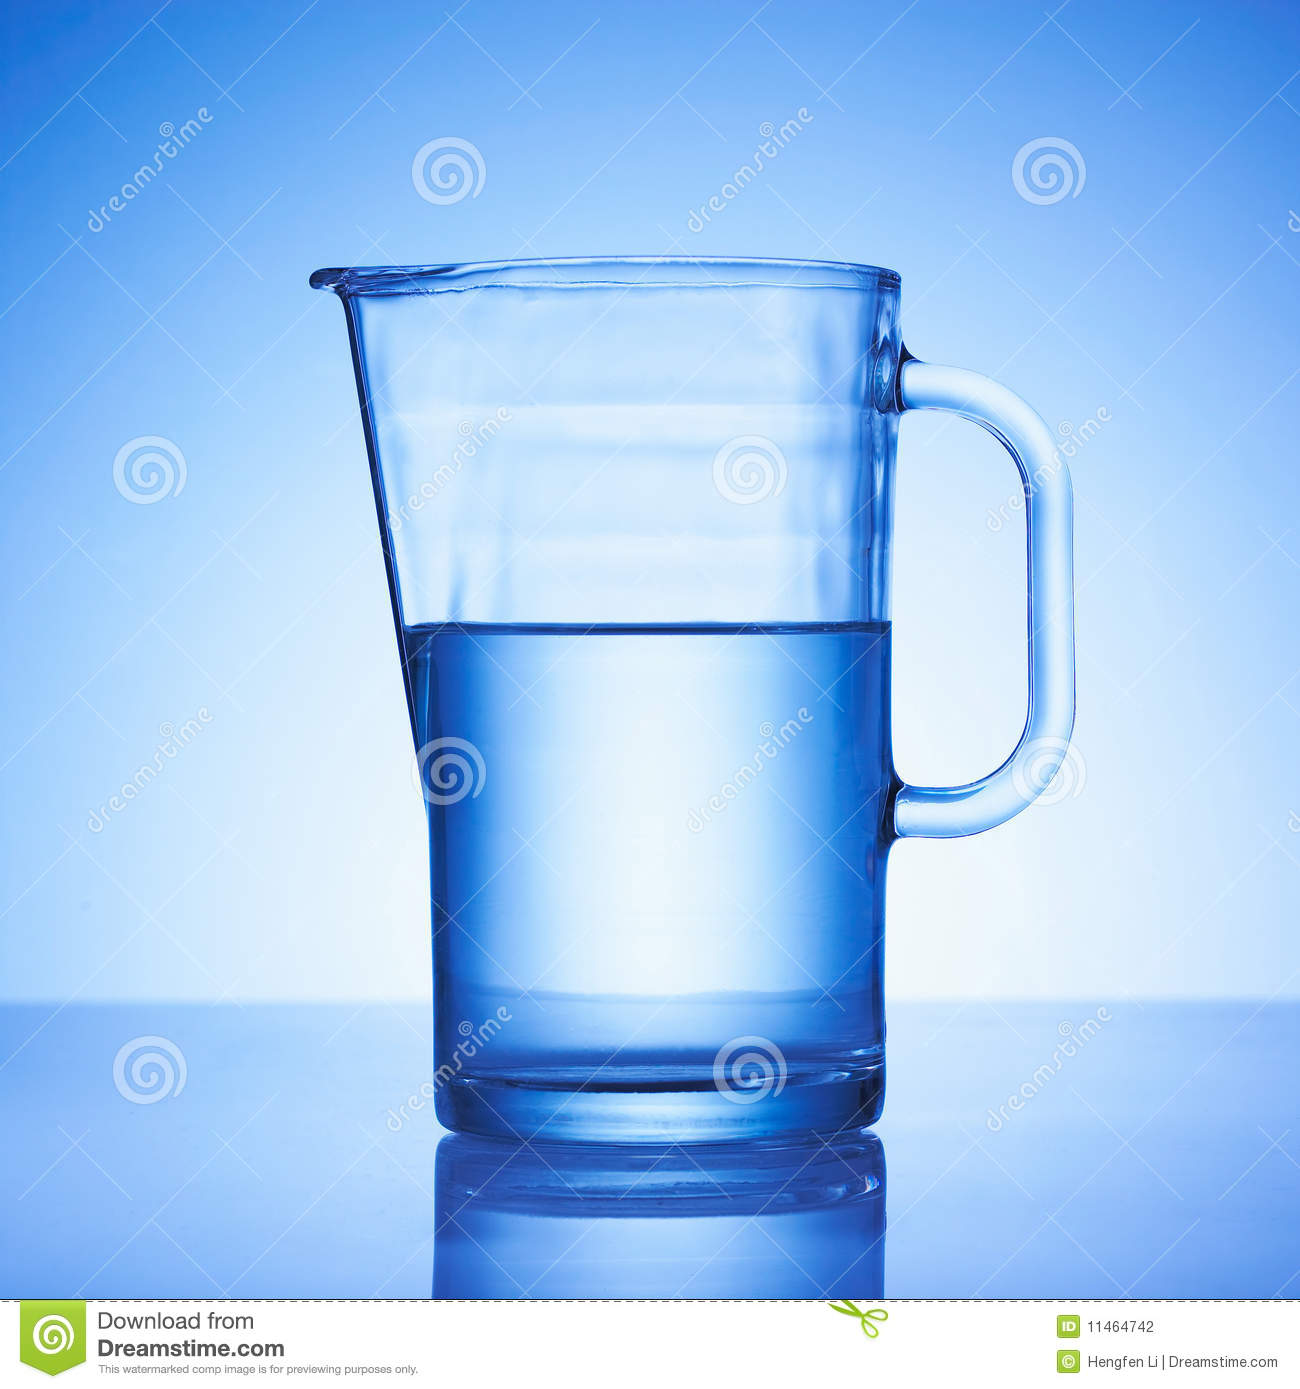 Cup Of Water Stock Photography - Image: 11464742